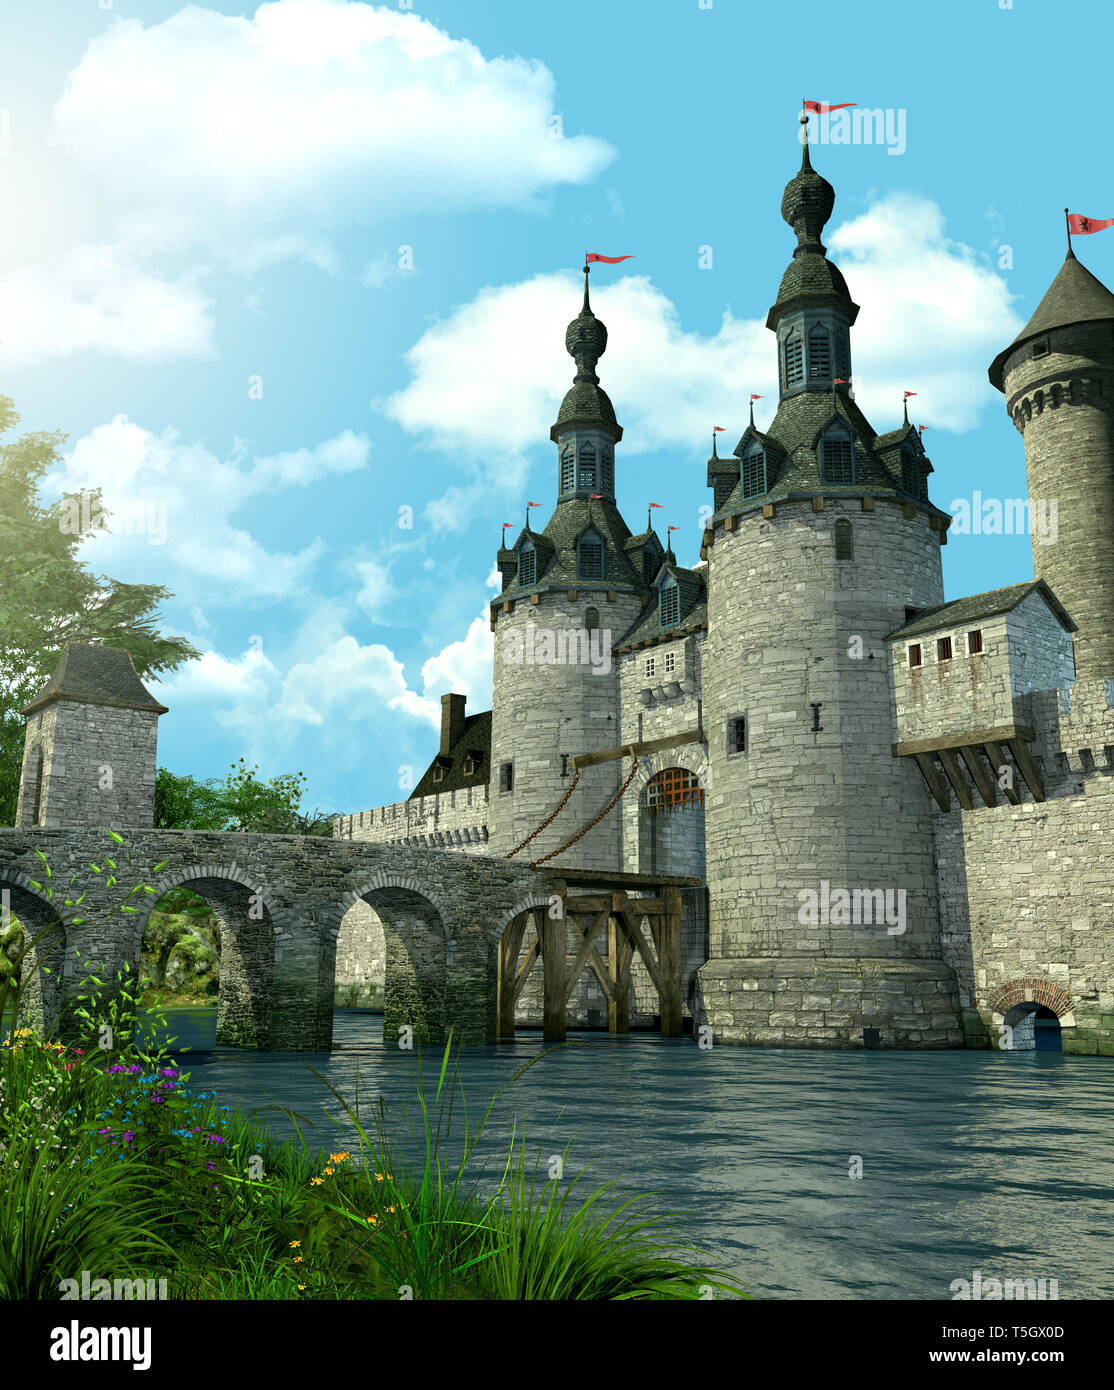 3D rendering of a romantic fairytale castle in an idyllic landscape framed by trees and protected by a moat filled with water - Stock Image